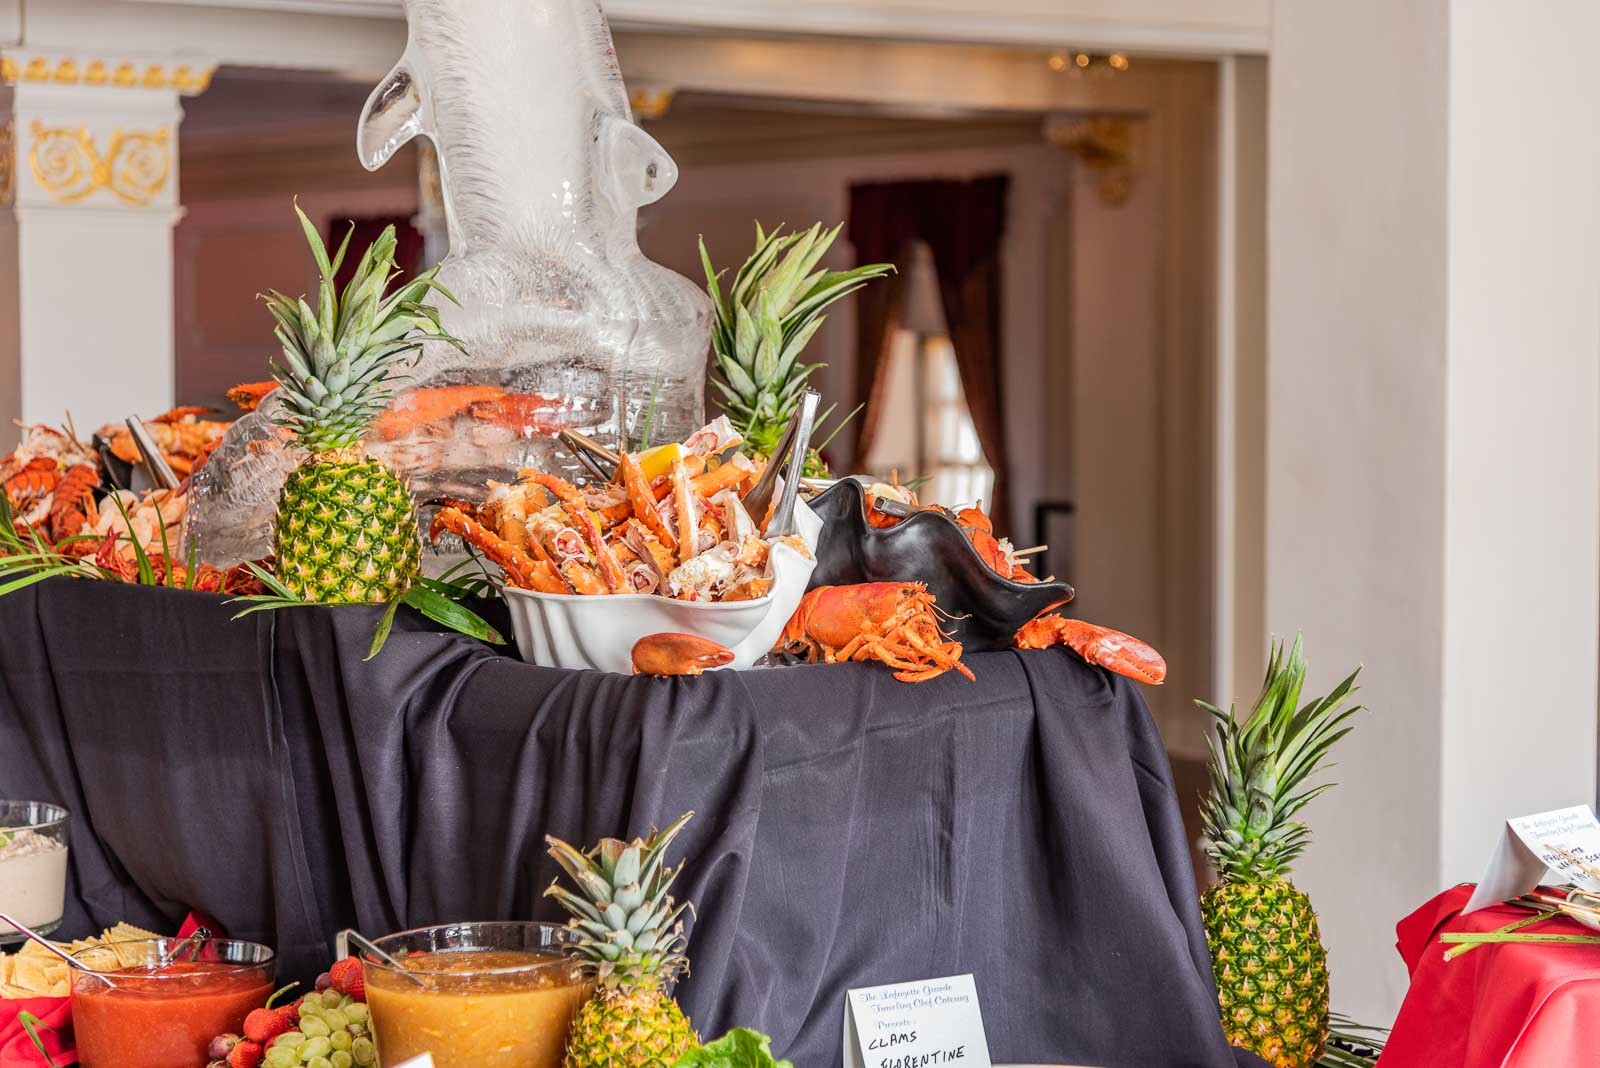 Corporate Party Crab Legs & Lobster Tail spread - served up on the 2nd floor Grande Ballroom.